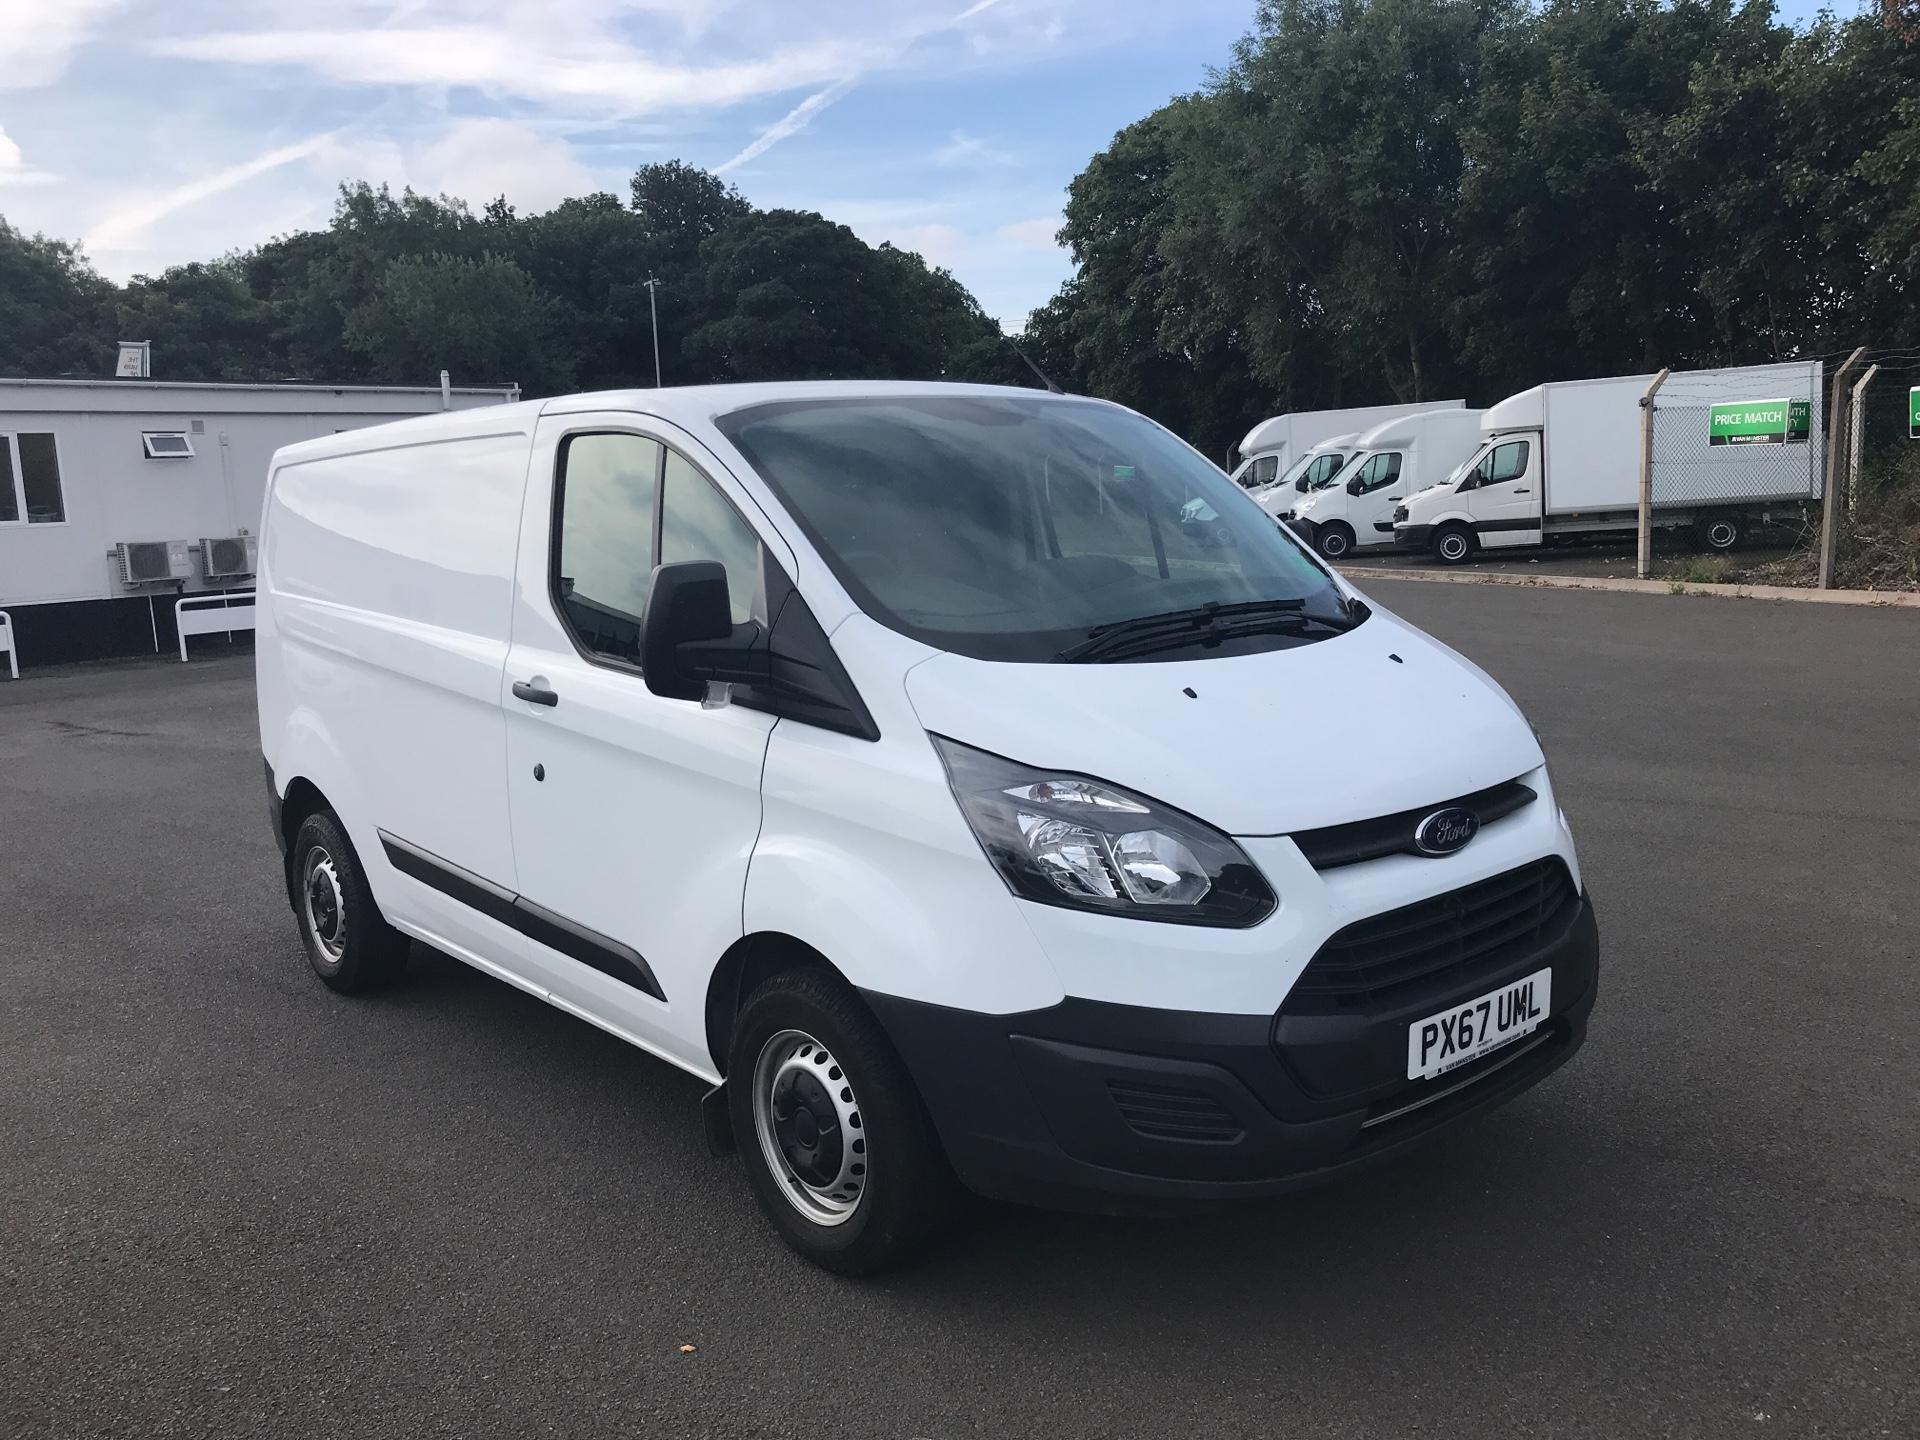 2017 Ford Transit Custom  270 L1 DIESEL FWD 2.0 TDCI 105PS LOW ROOF VAN EURO 6 (PX67UML)